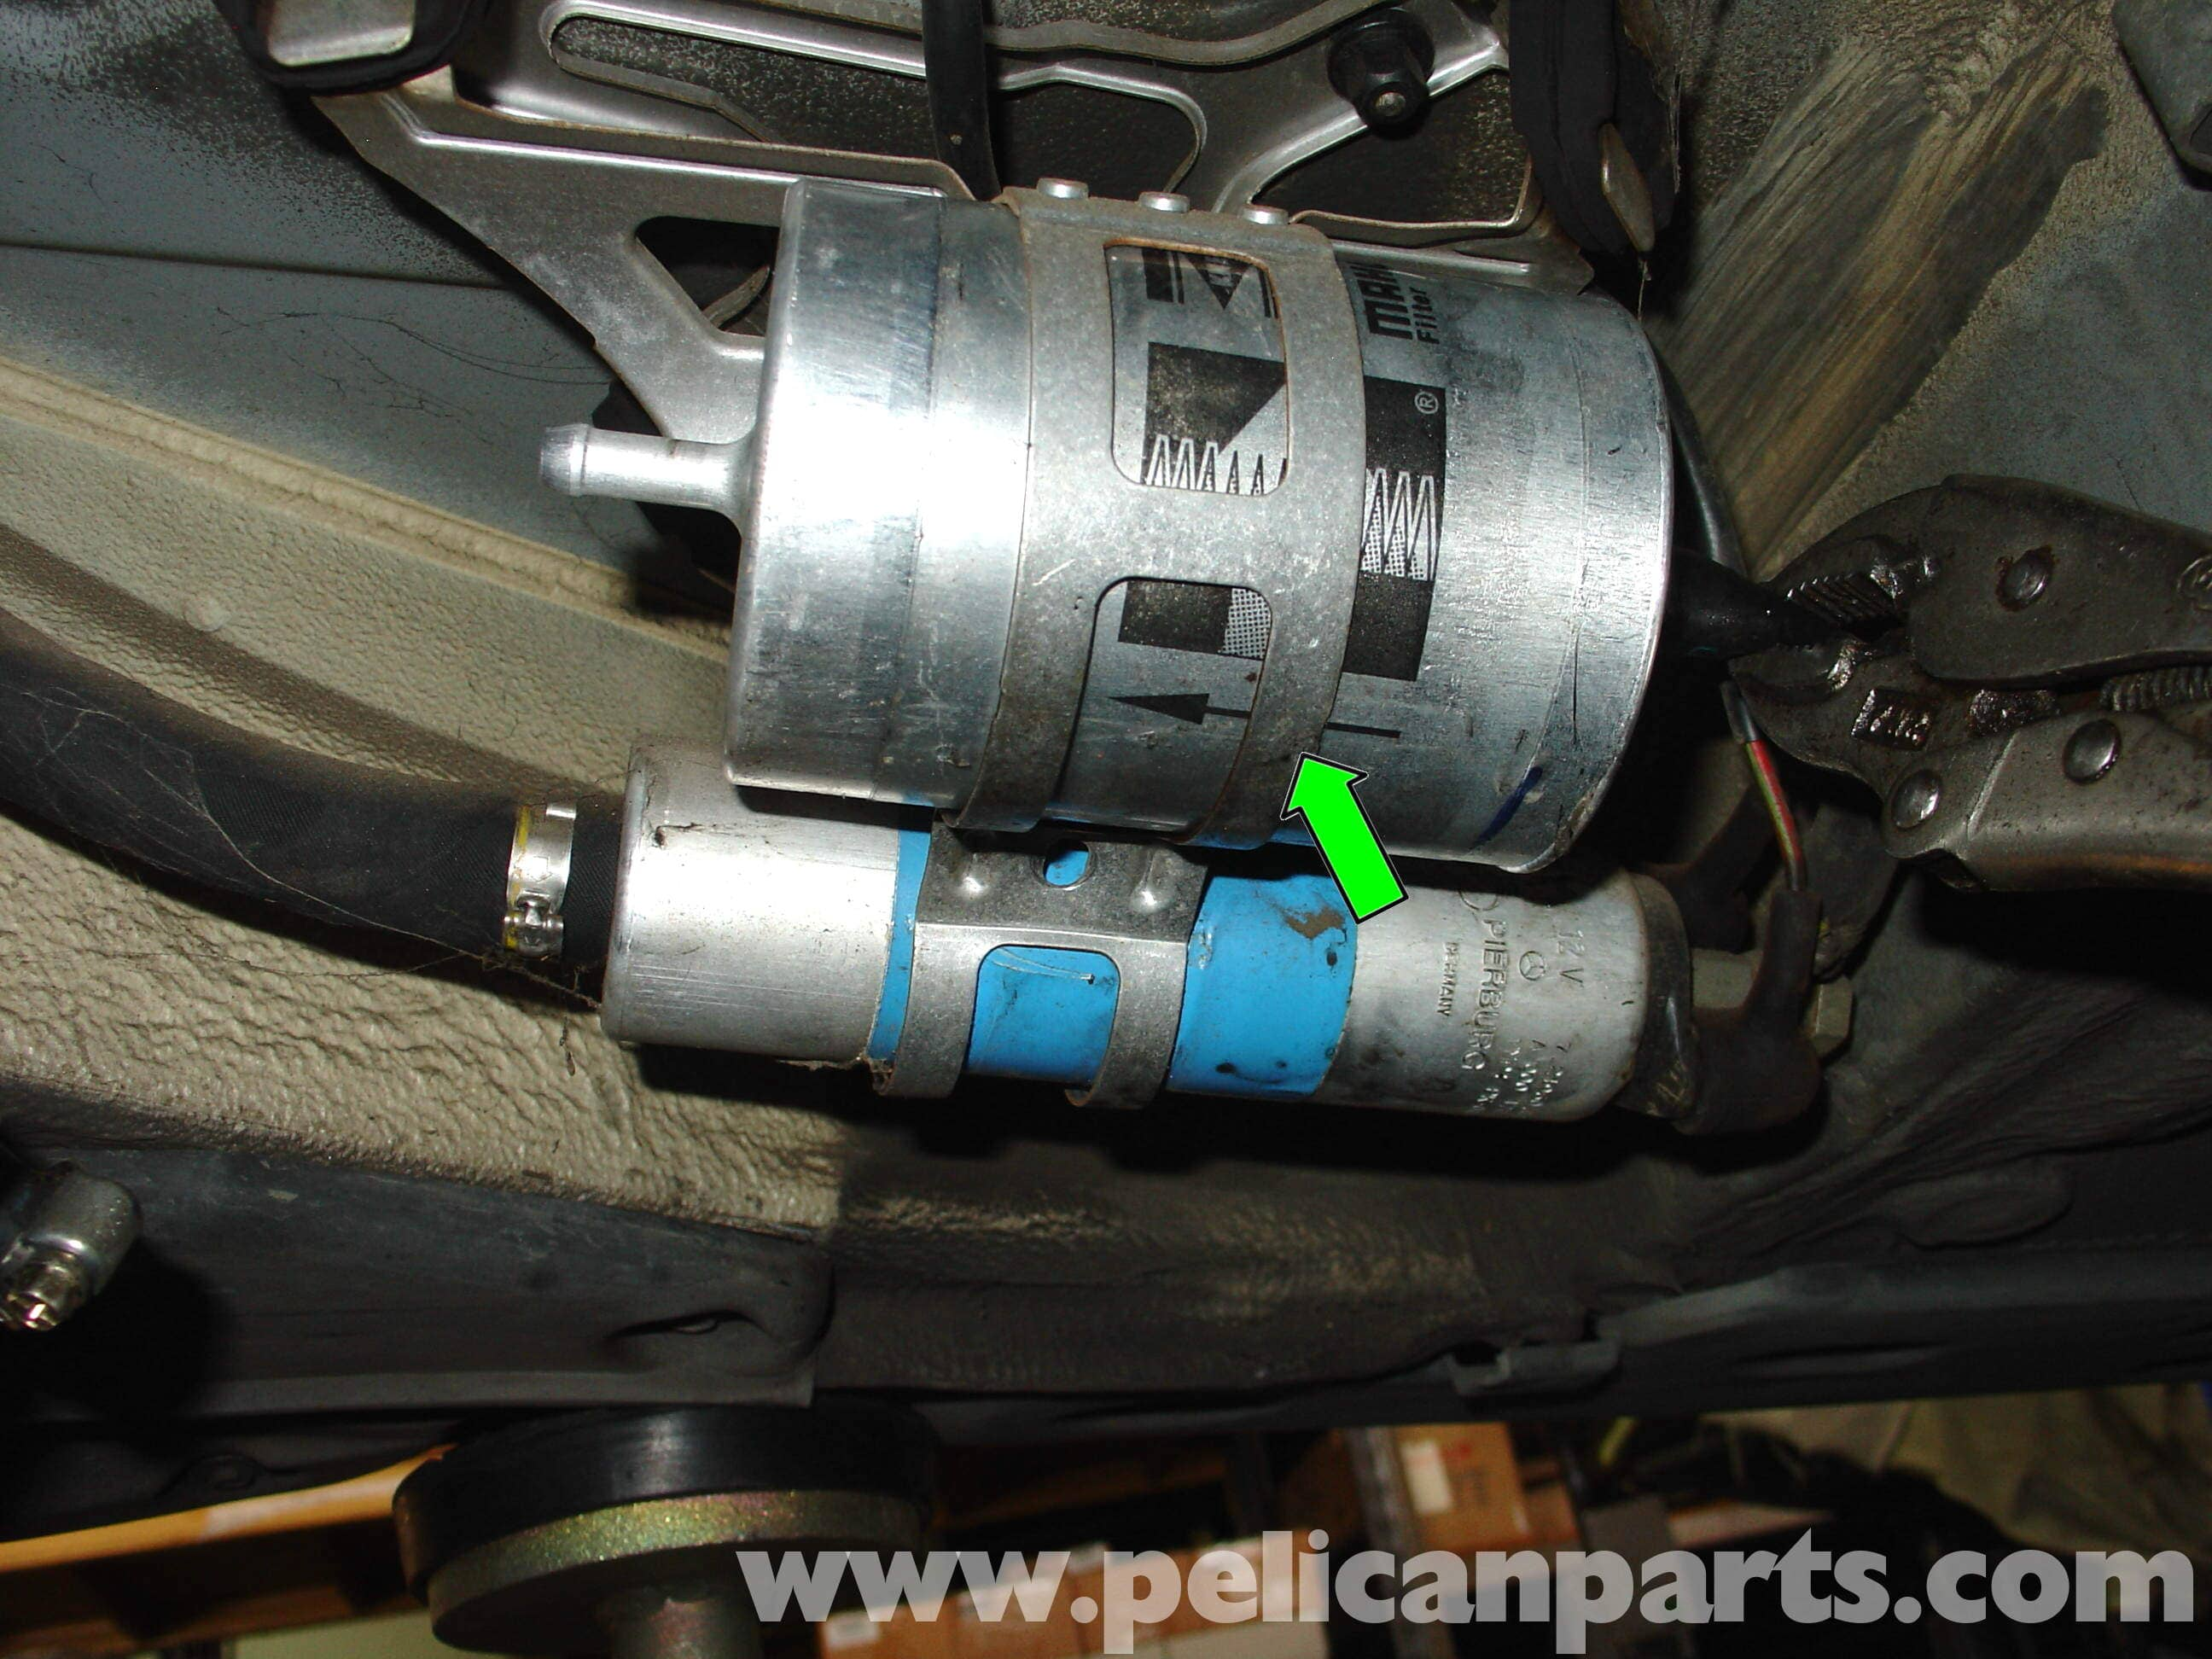 2001 s10 fuel filter location 2001 e320 fuel filter location #8